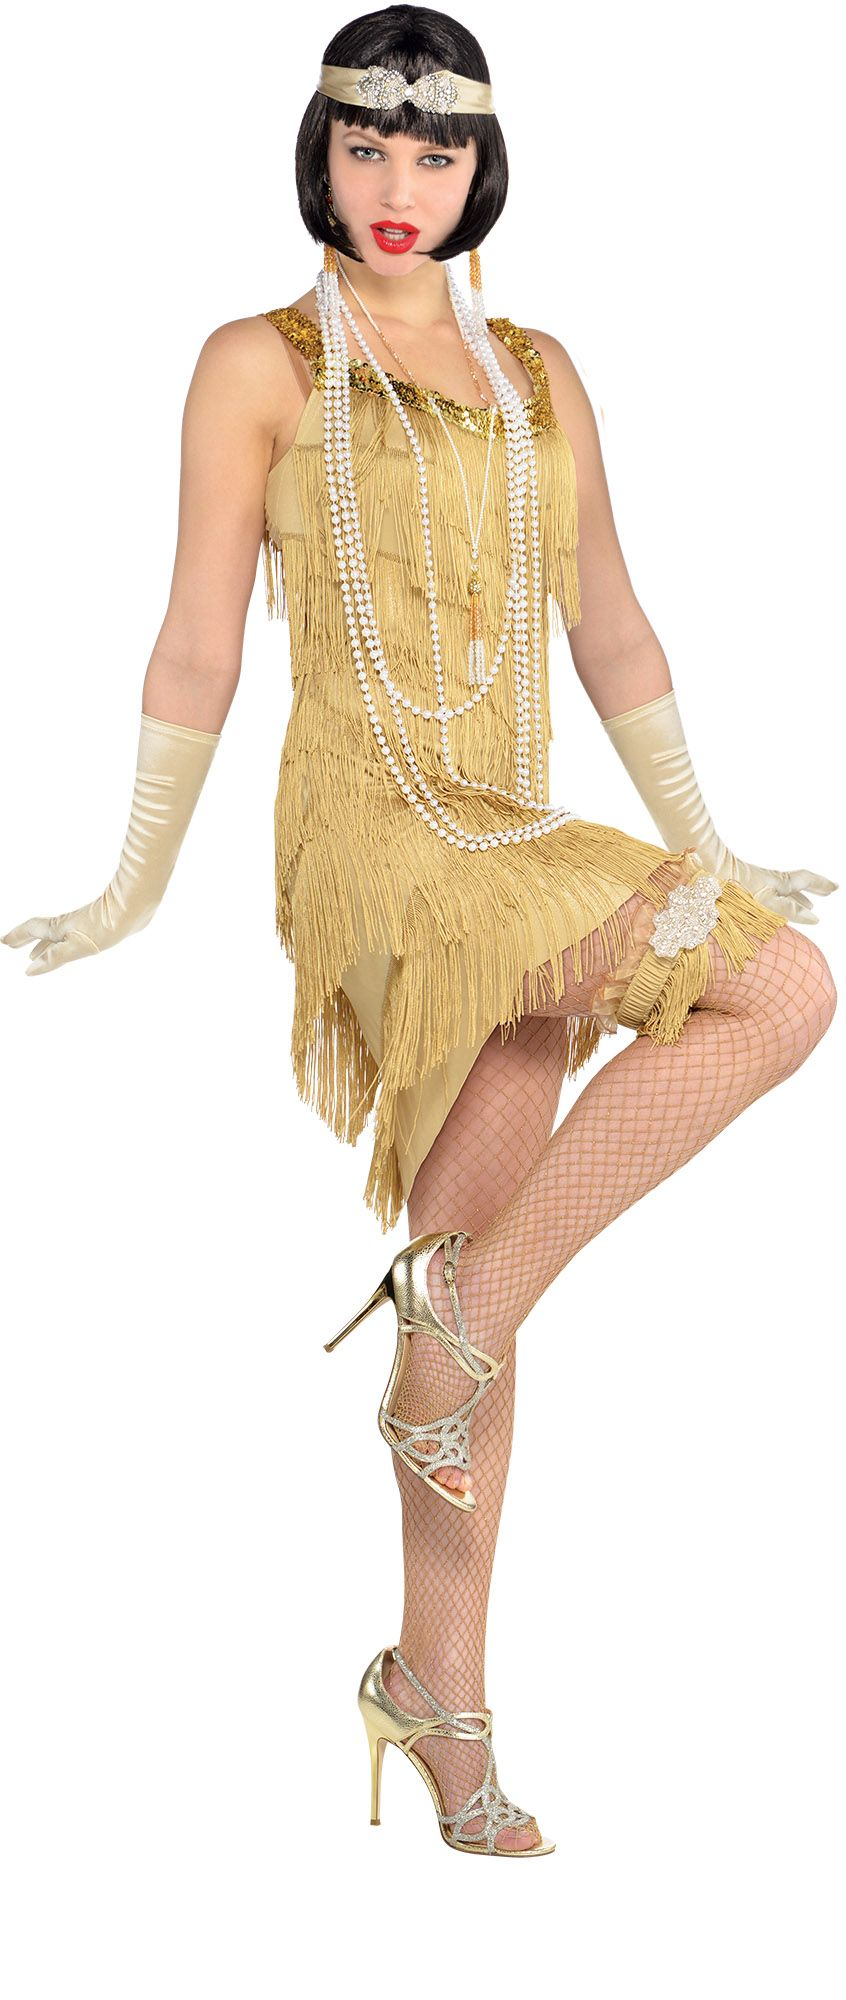 Create Your Look - Female Flapper